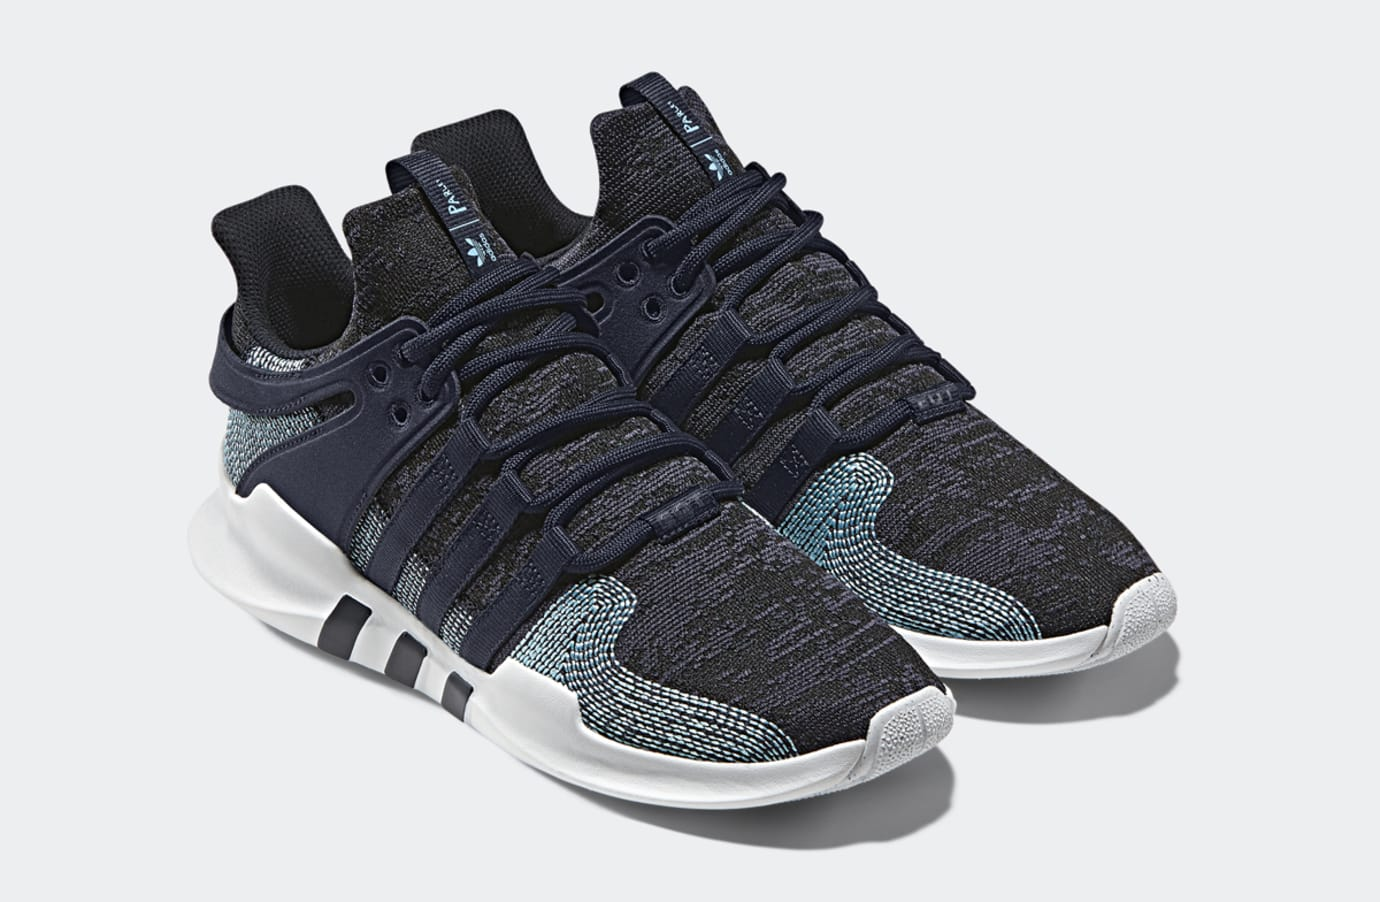 finest selection 7e753 35849 Parley Adidas EQT Support ADV Release Date | Sole Collector